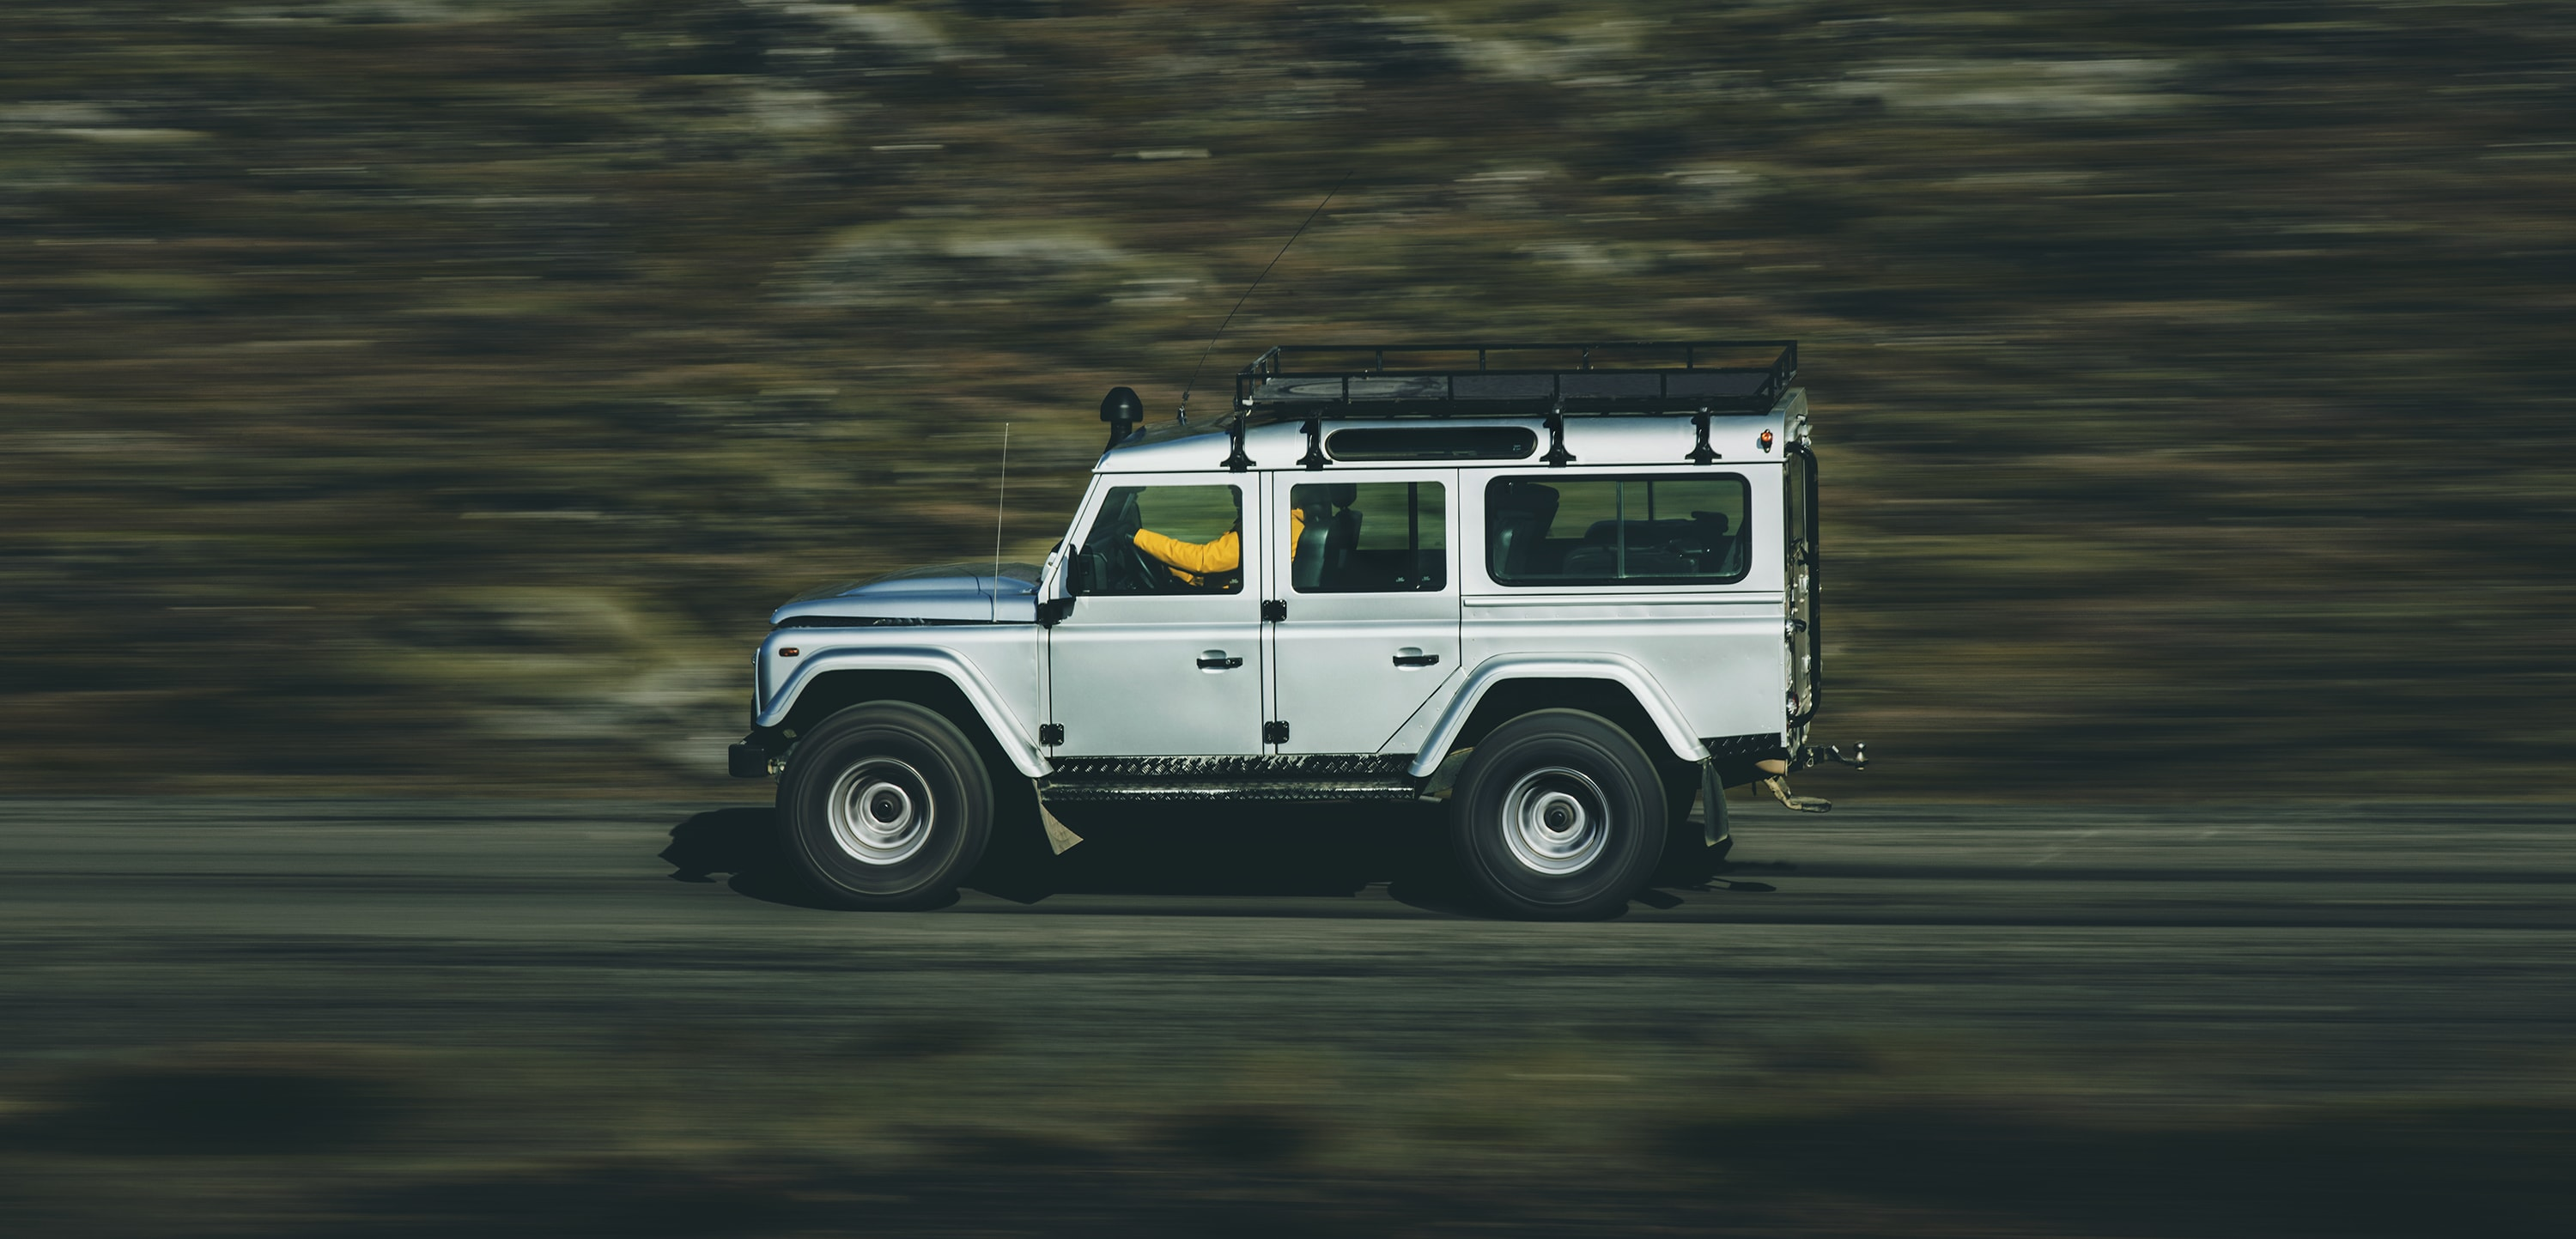 Andreas Kleiberg – Land Rover Defender